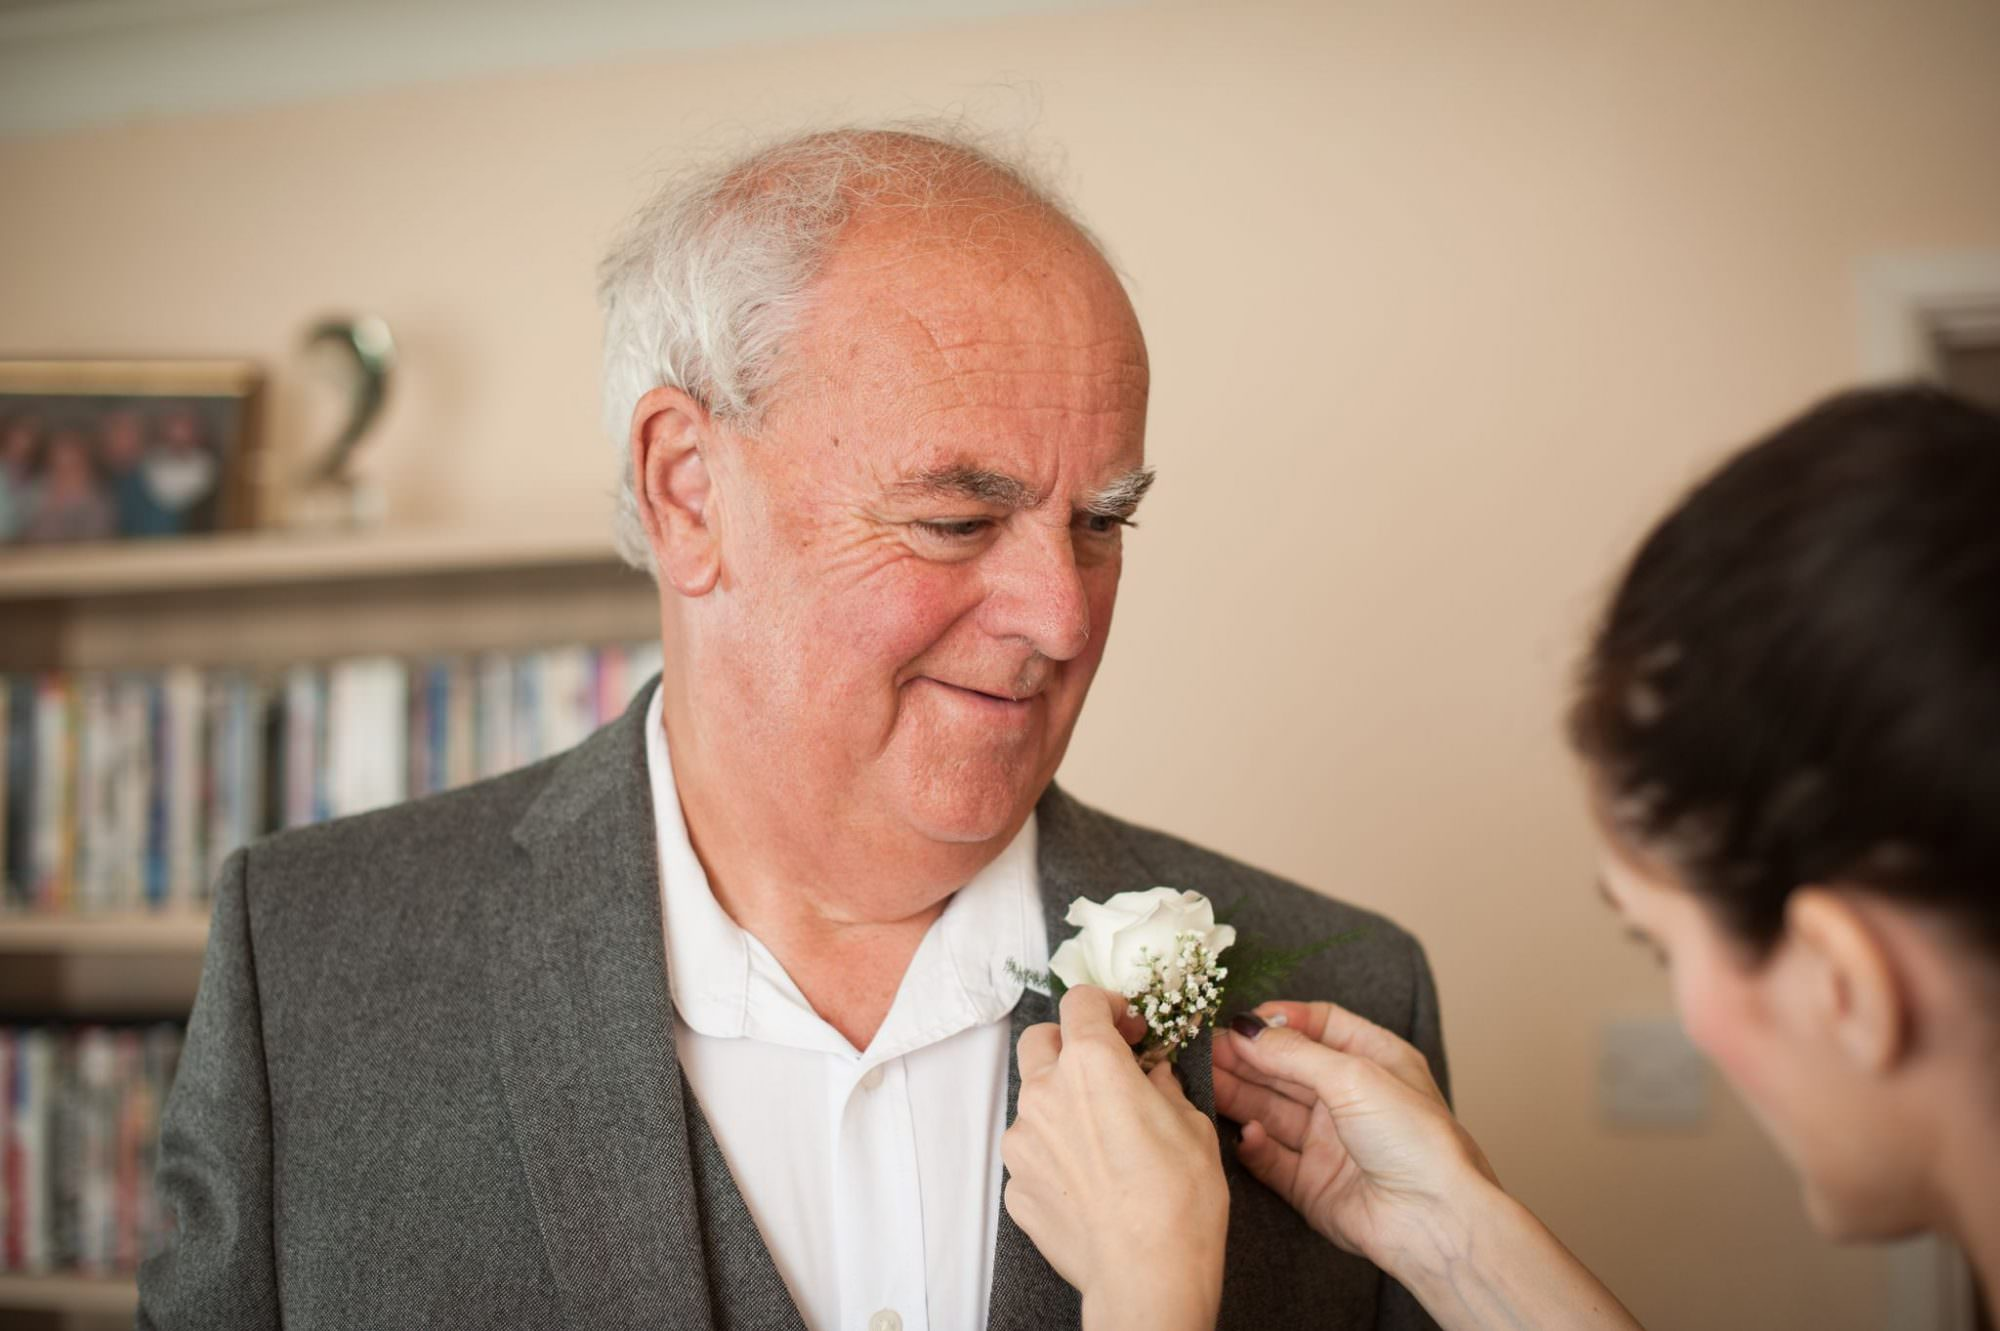 Father of Bride's Buttonhole with White Rose